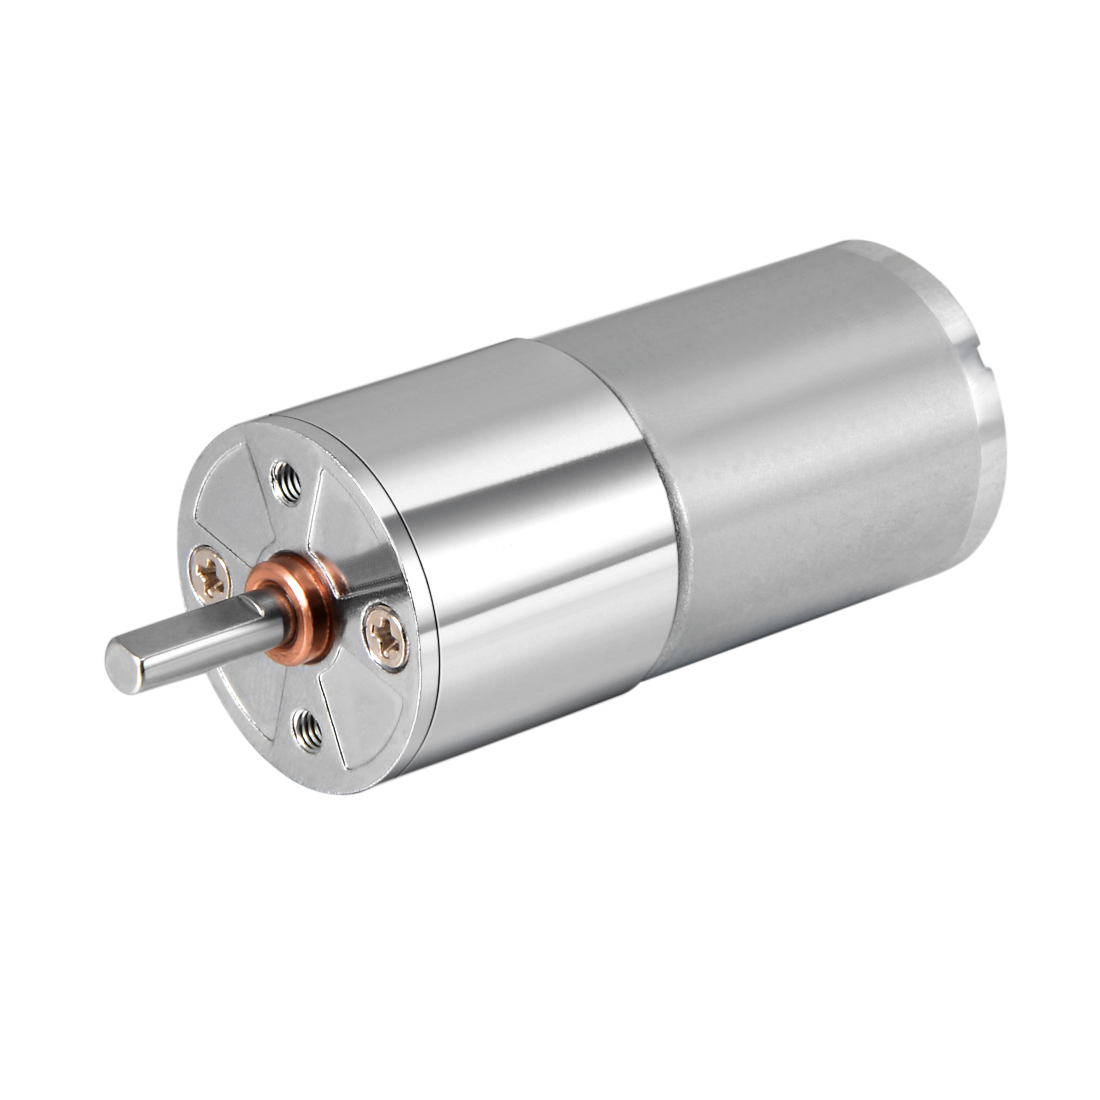 12V DC 50 RPM Gear Motor High Torque Reduction Gearbox Centric Output Shaft